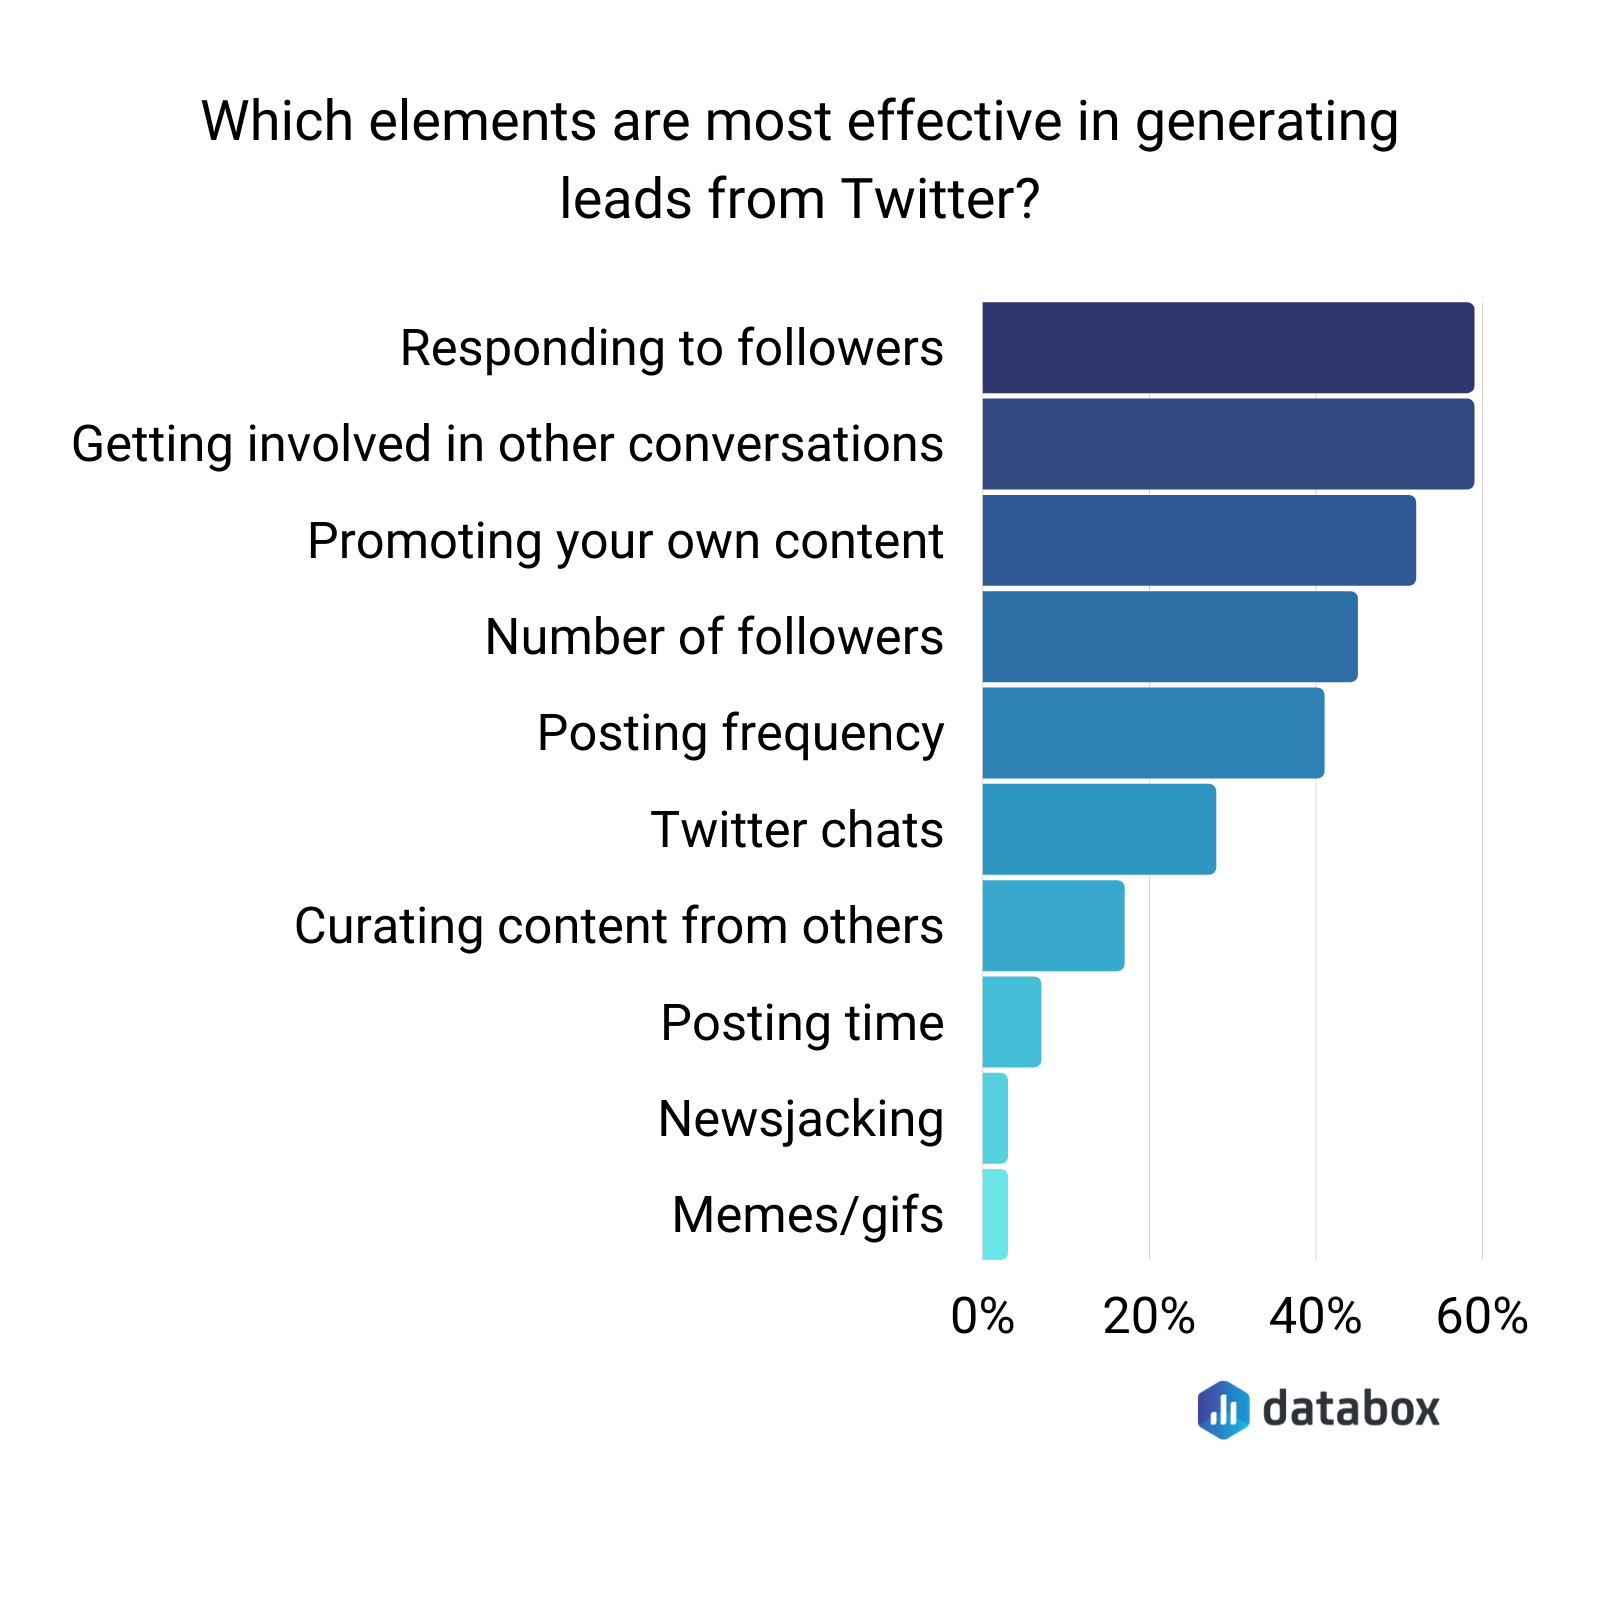 most effective elements in generating leads from Twitter